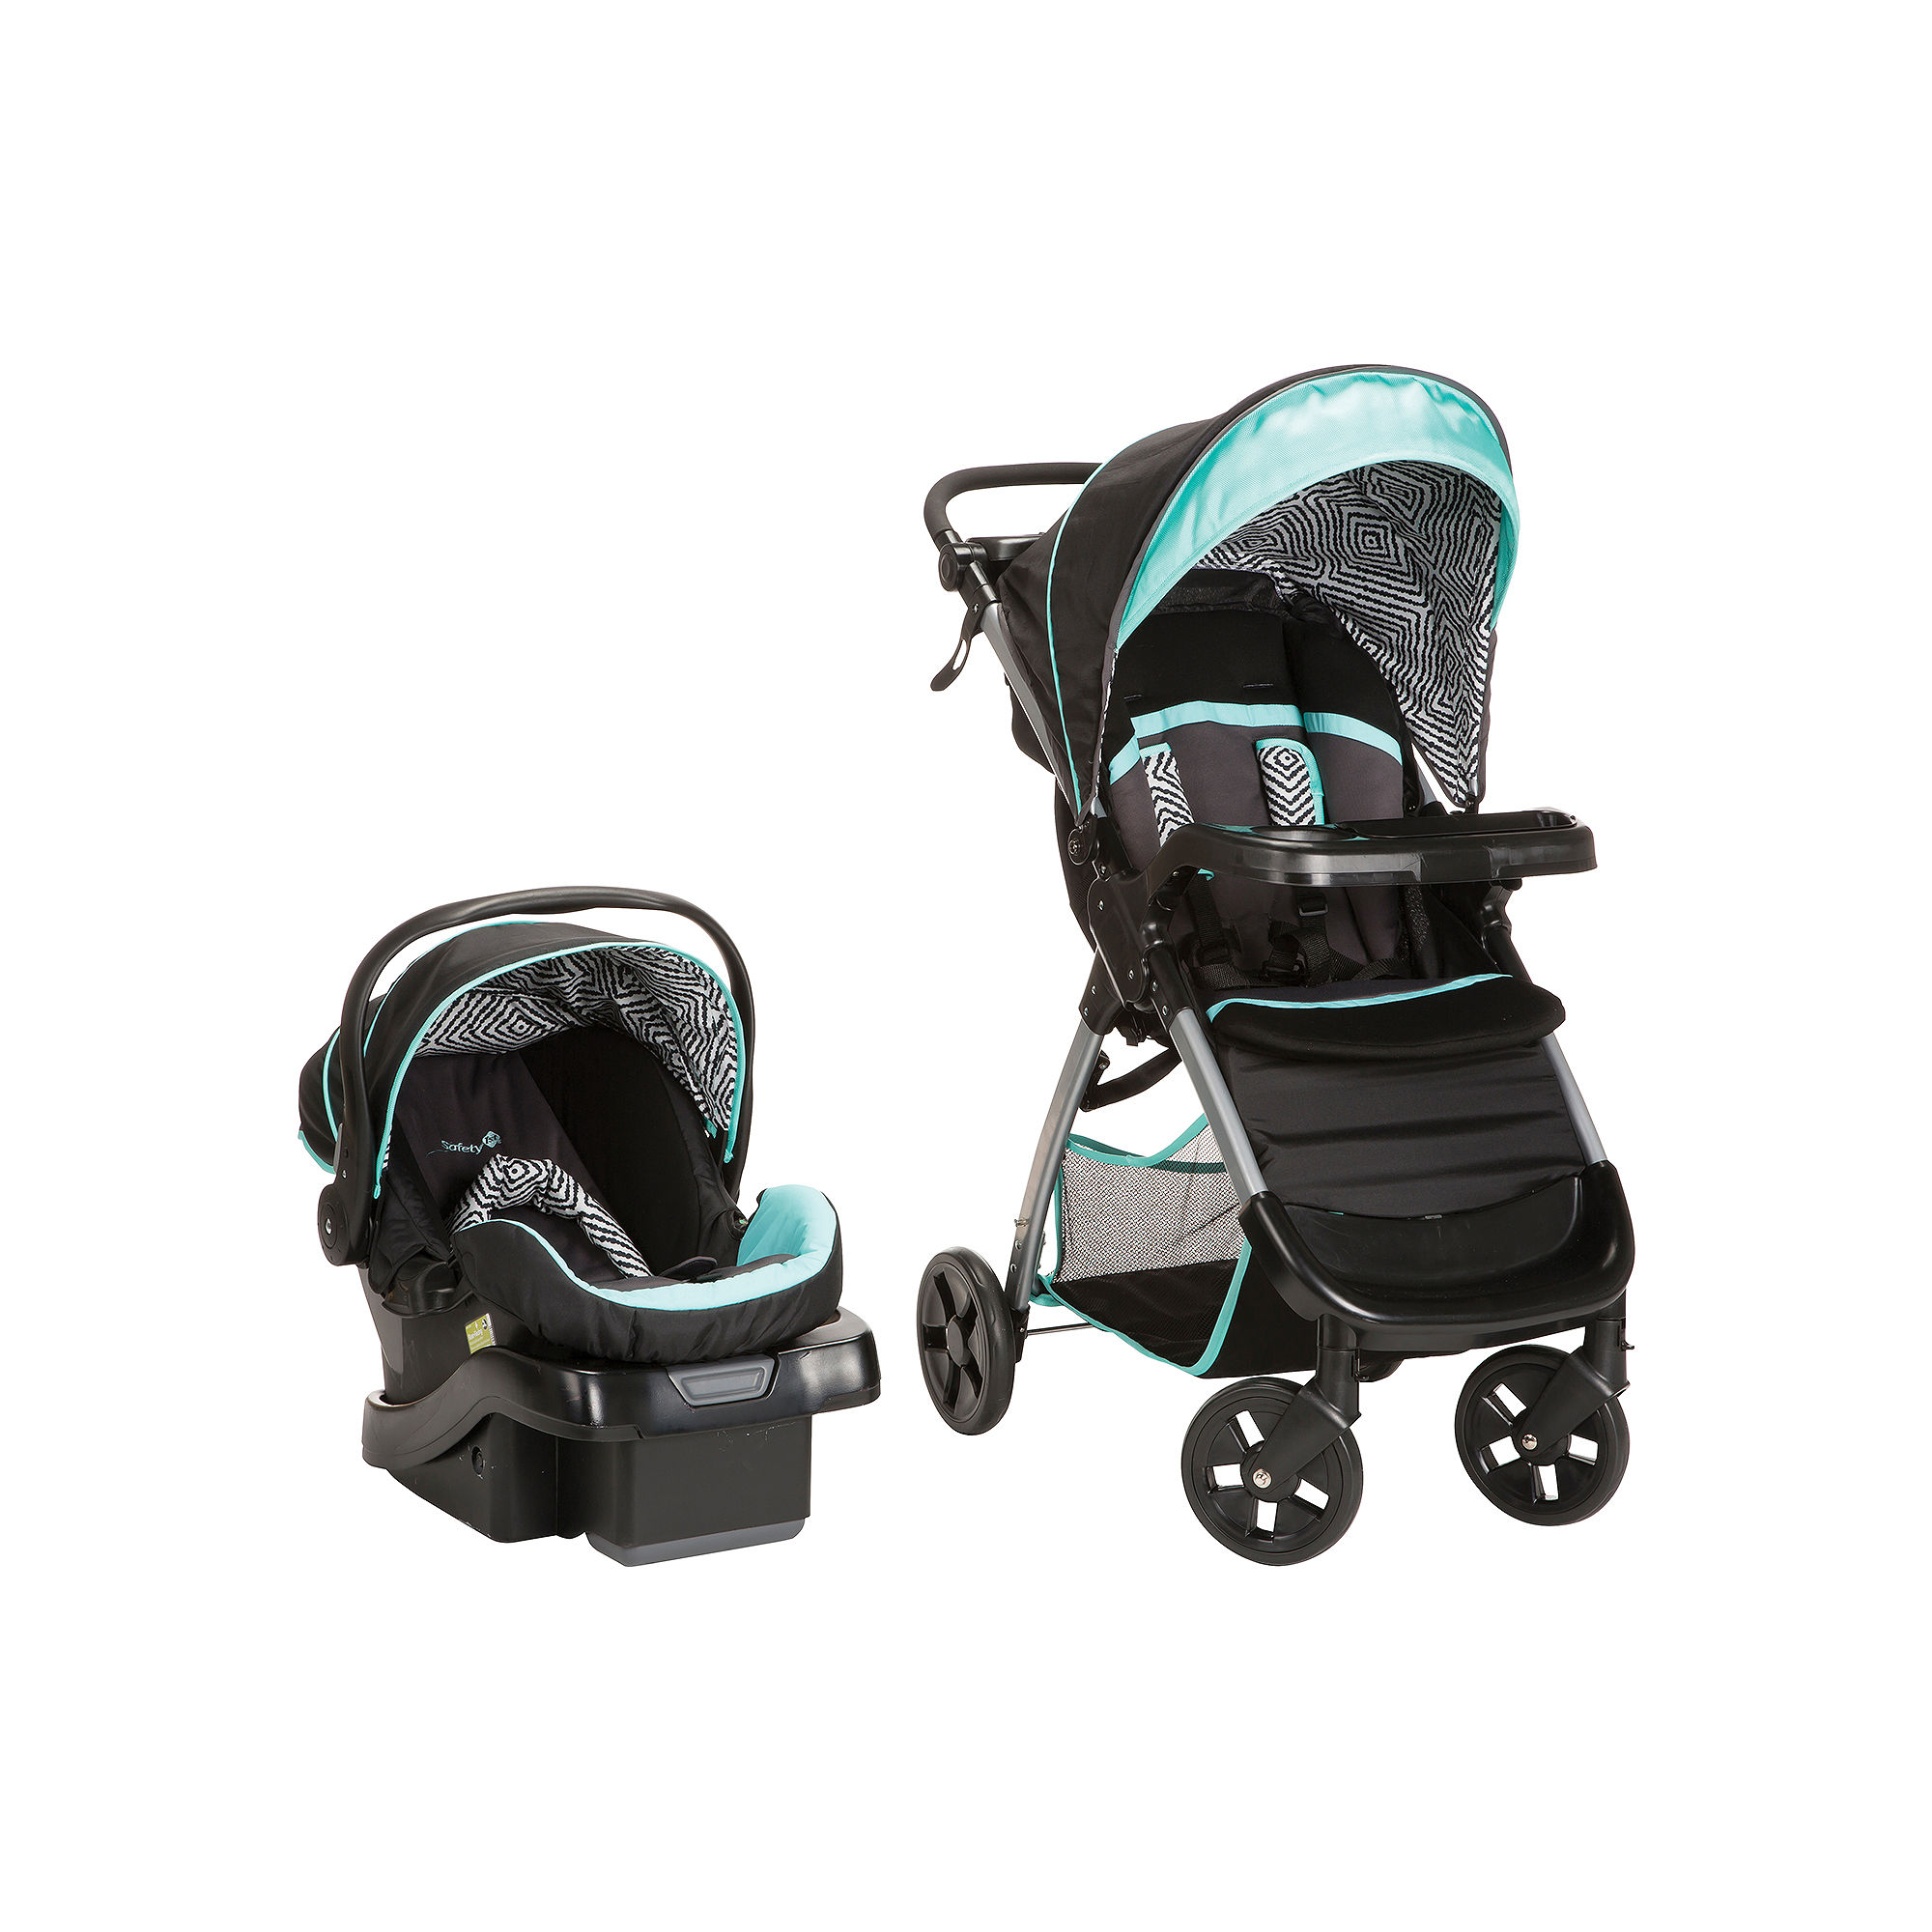 Roller skates jcpenney - Upc 884392592301 Product Image For Safety 1st Amble Quad Onboard 35 Travel System Black